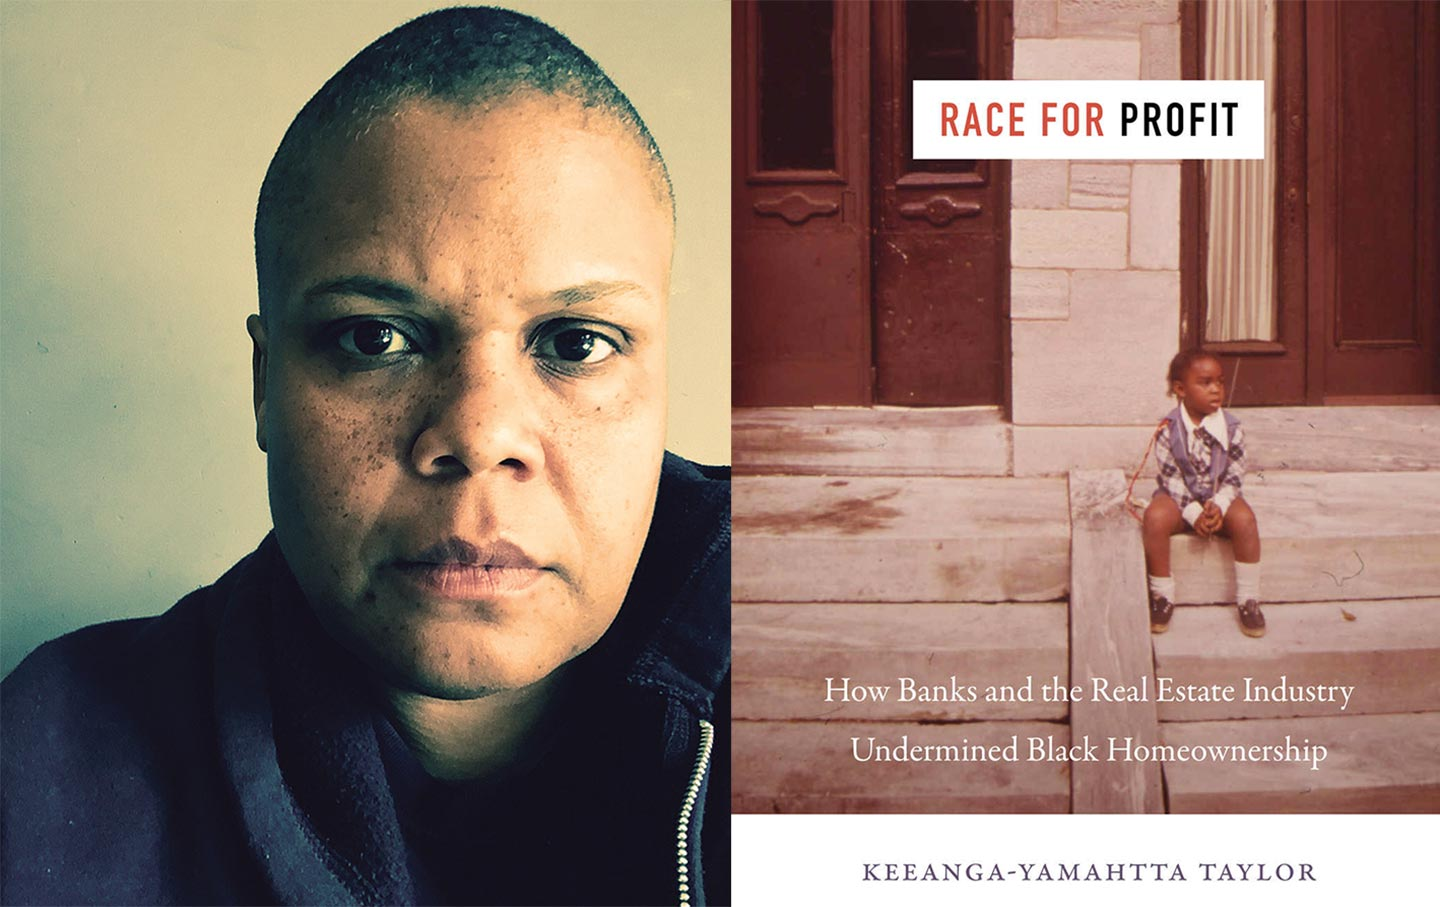 Keeanga-Yamahtta Taylor Says There Is No Housing Crisis: 'It's Just Housing Under Capitalism'